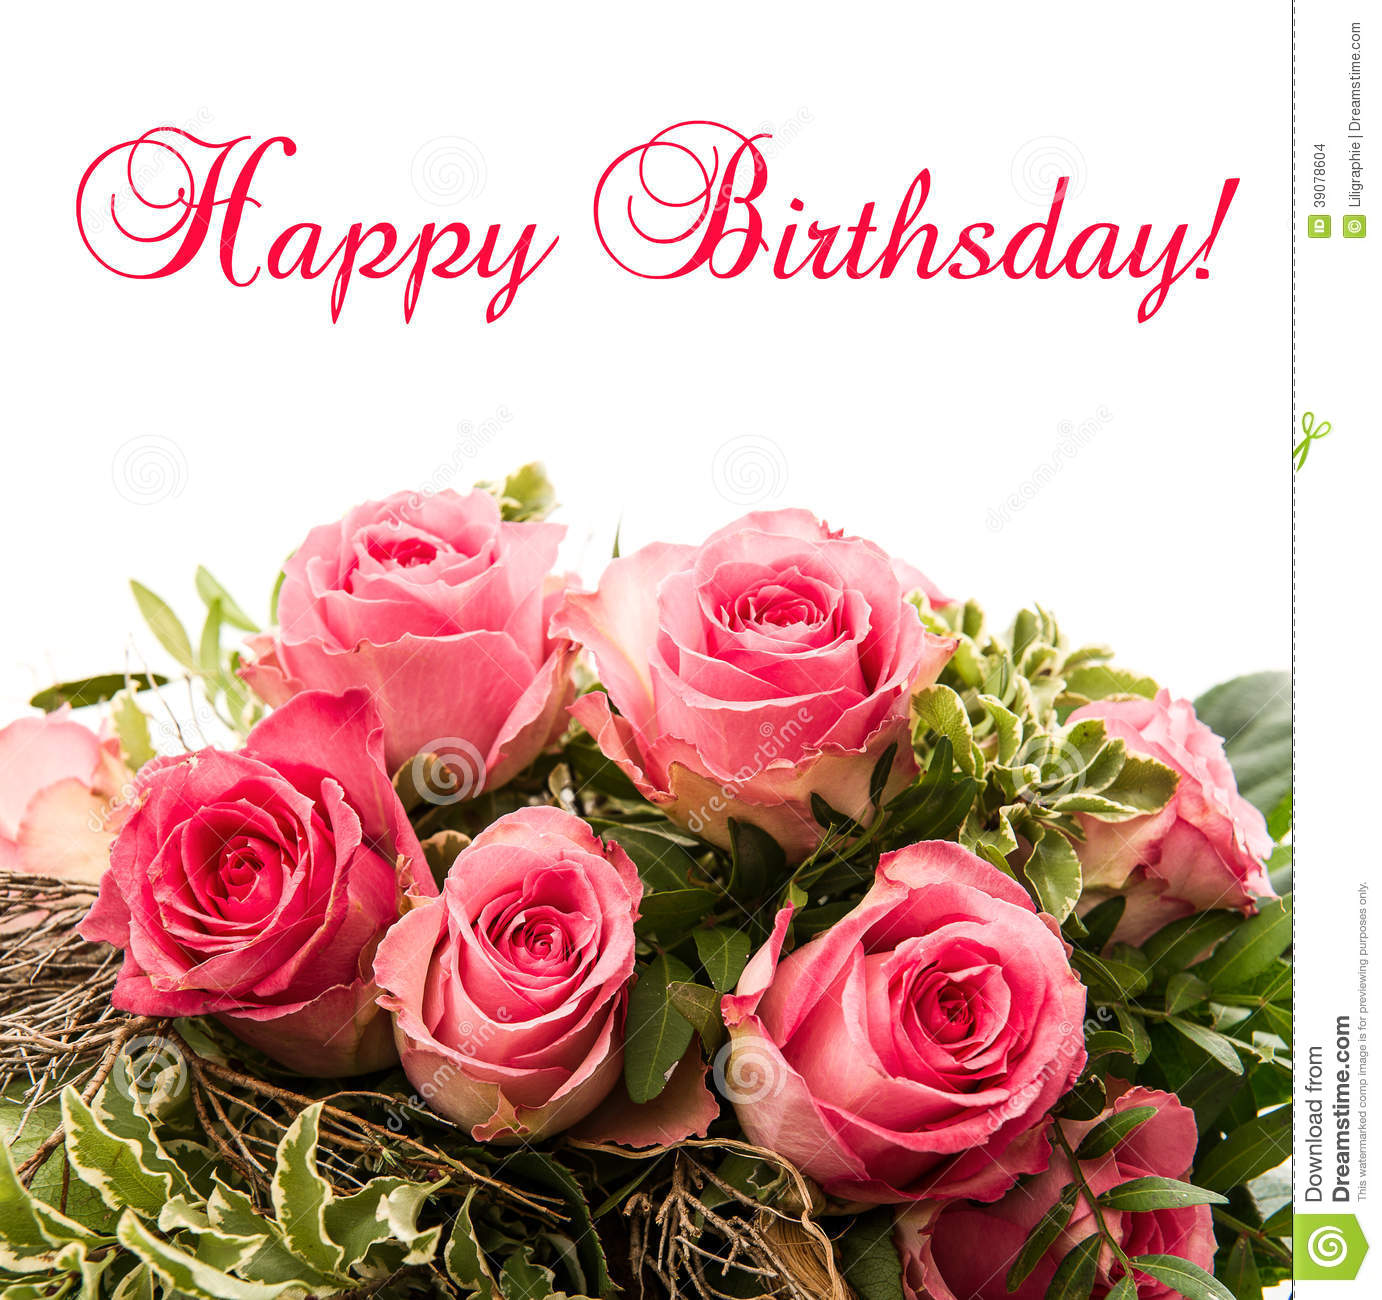 hoontoidly: Roses Bouquet For Birthday Images